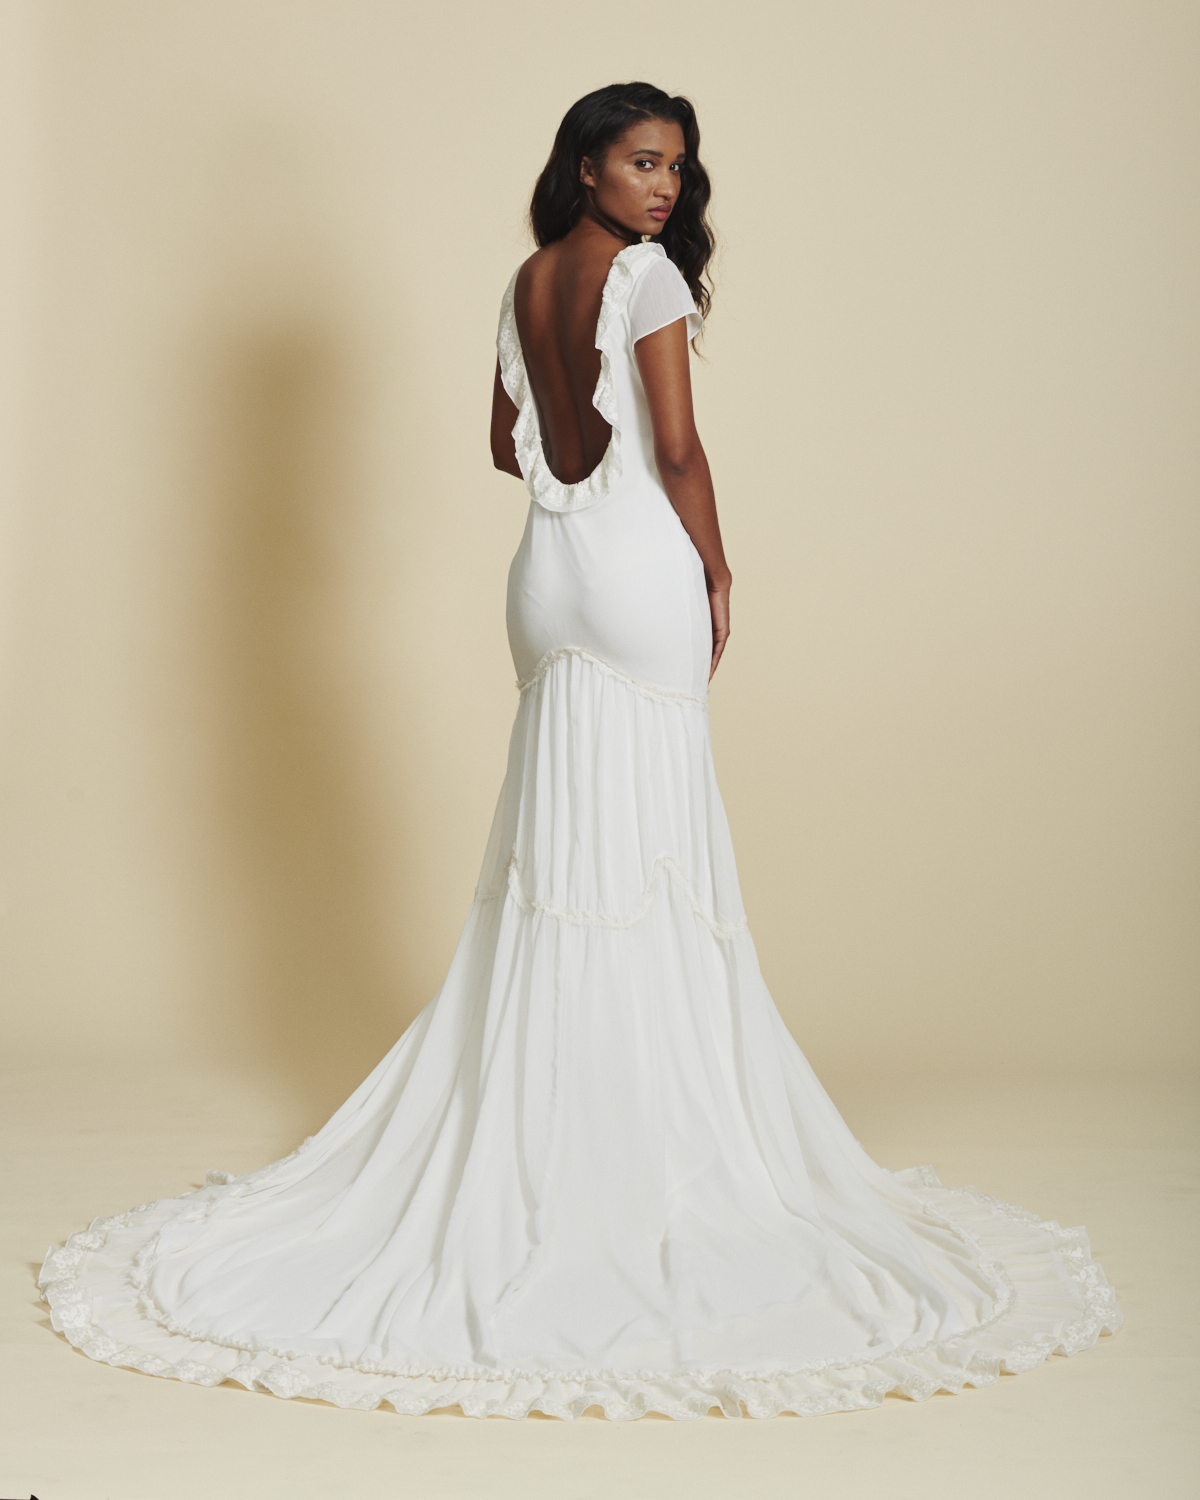 5 Ways To Wear A Bra With A Backless Wedding Dress Archive 12,Mother Of Bride Wedding Dresses